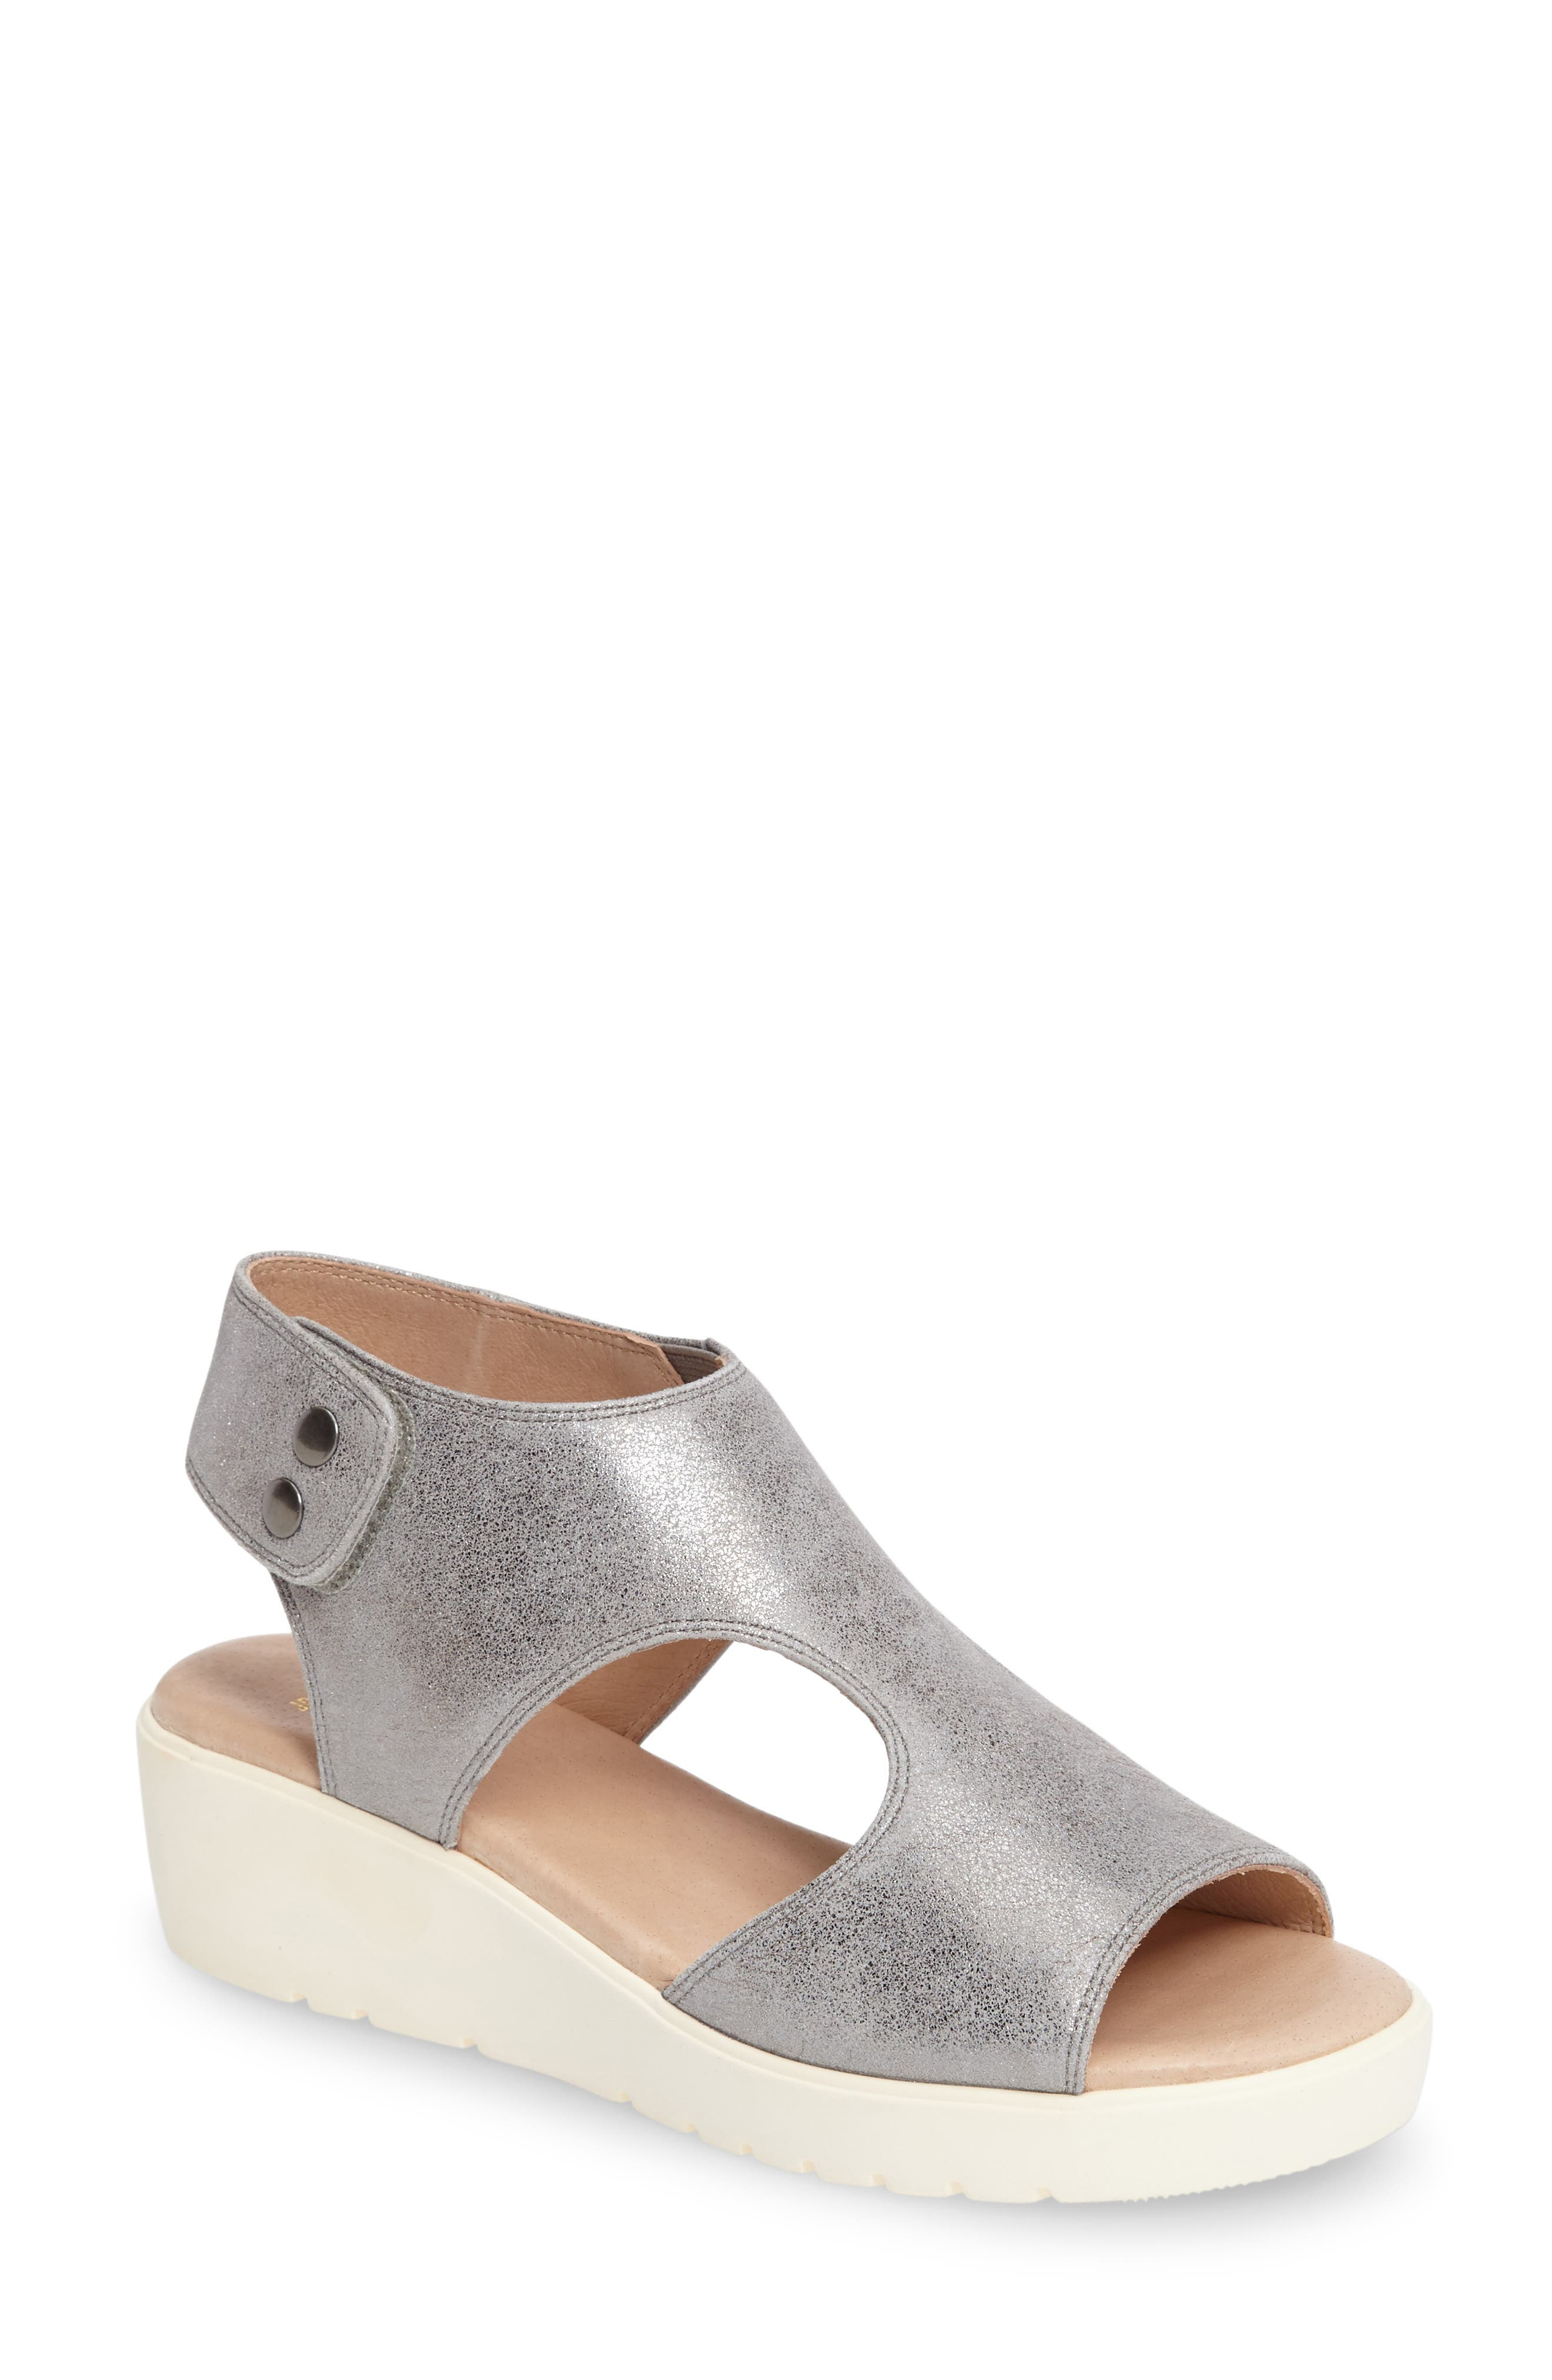 Camilla Slingback Wedge Sandal,                         Main,                         color, SILVER METALLIC SUEDE